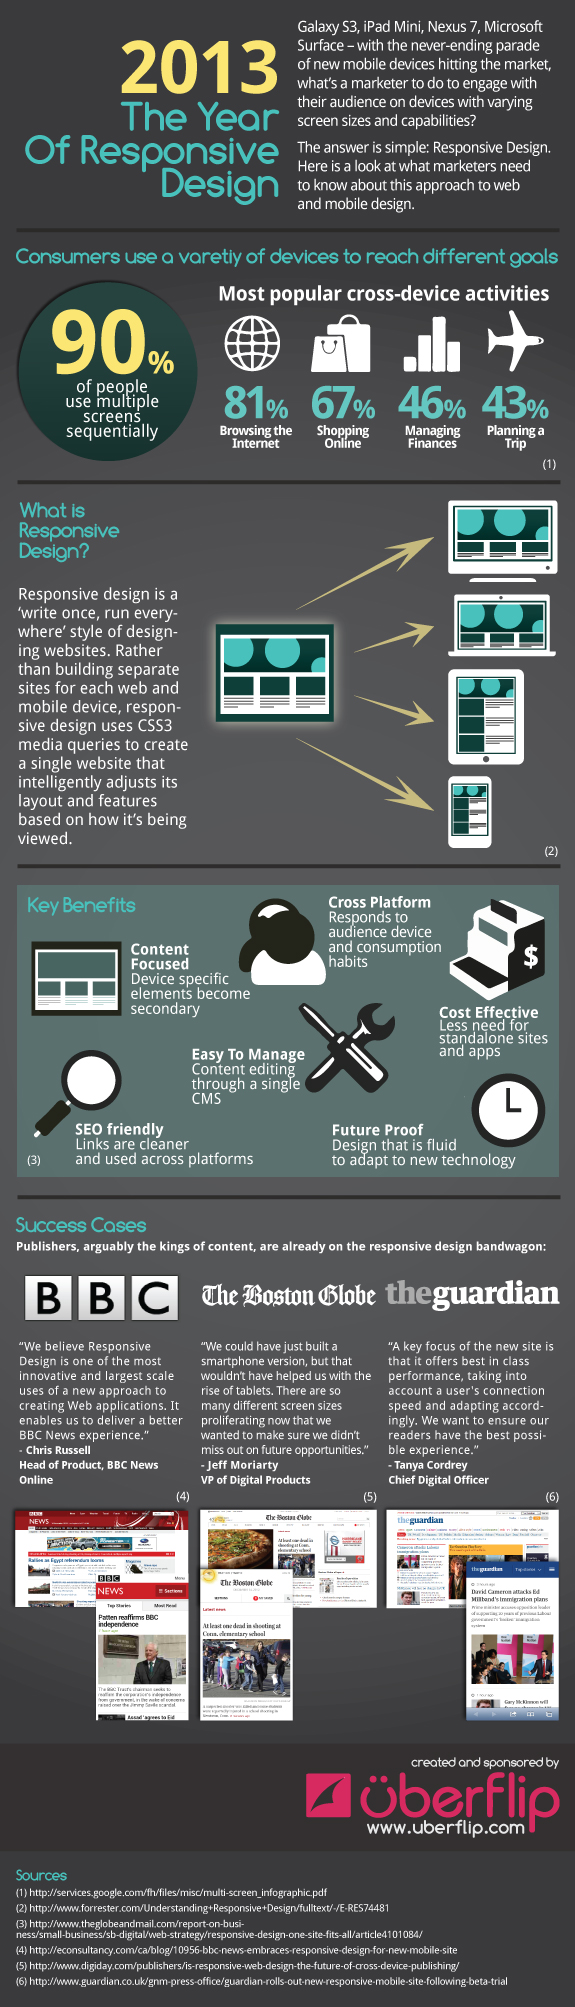 year of responsive design infographic jonno rodd 2013: The Year of Responsive Design [Infographic]